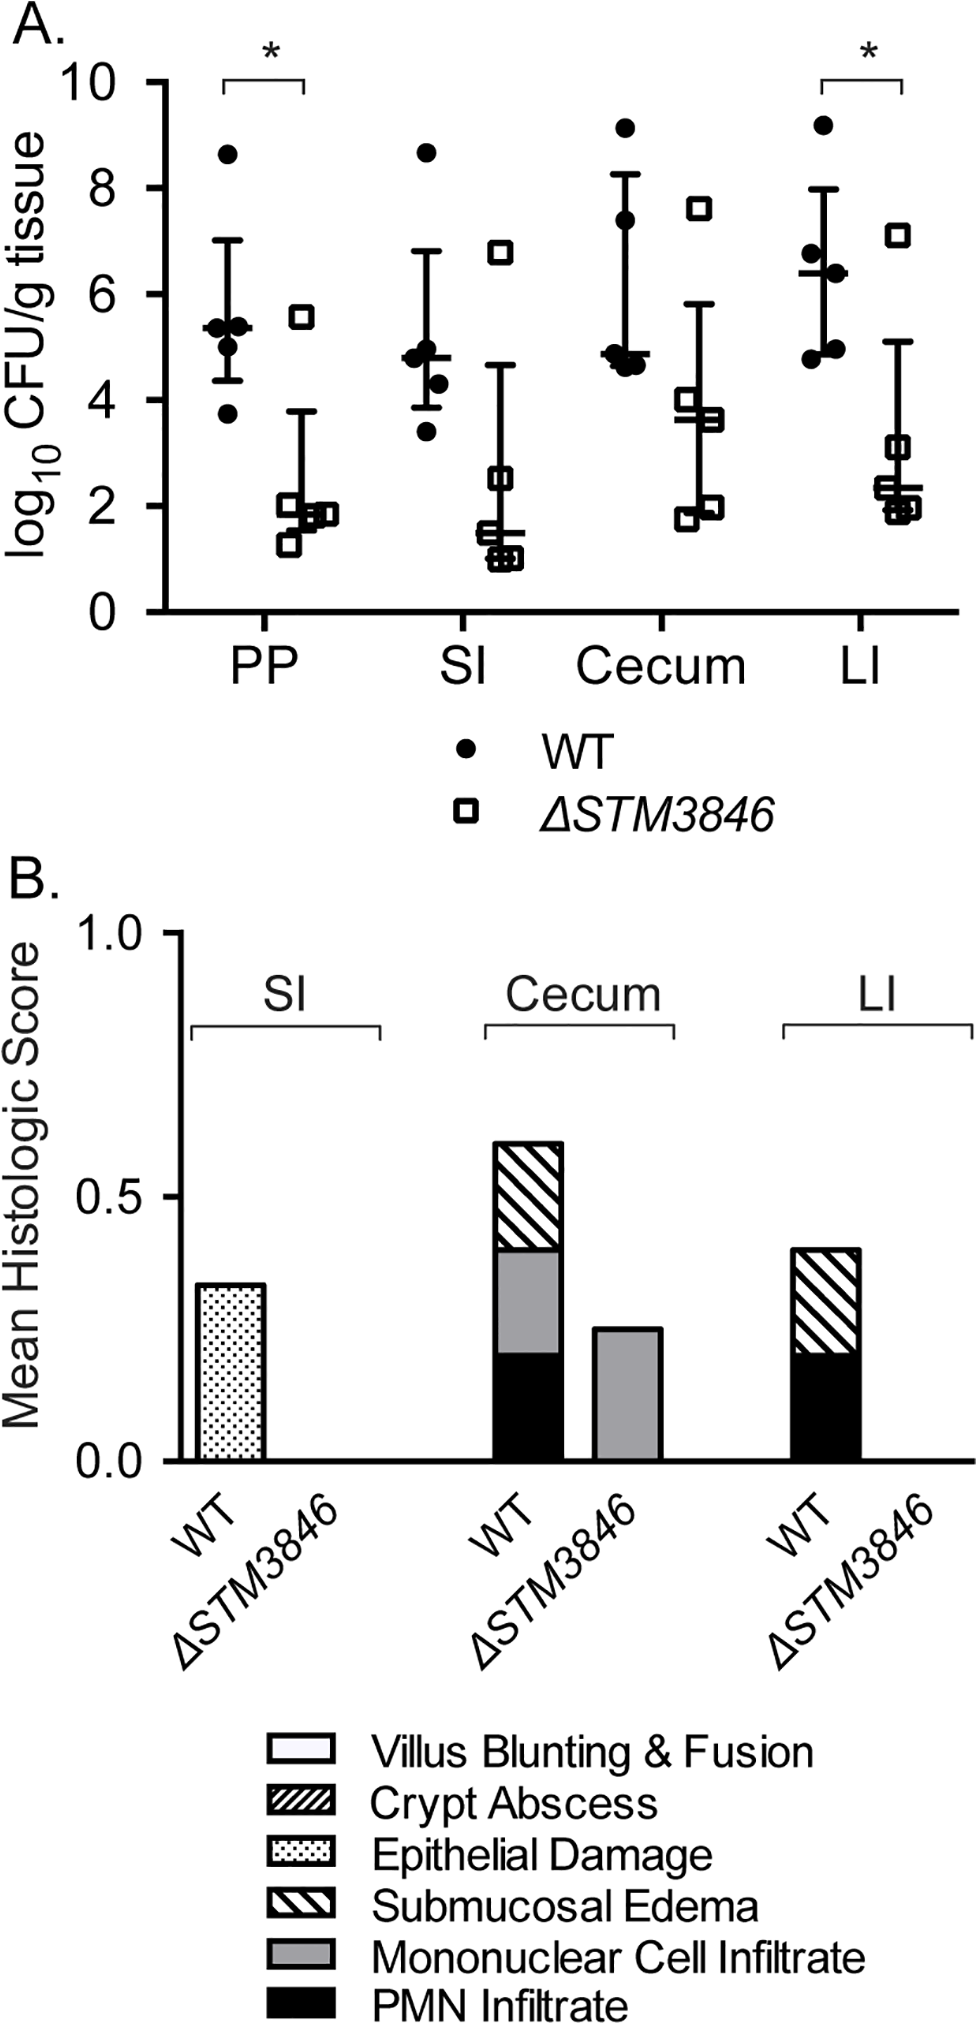 The Δ<i>STM3846</i> mutant colonizes the non-inflamed intestine poorly in the murine typhoid model.